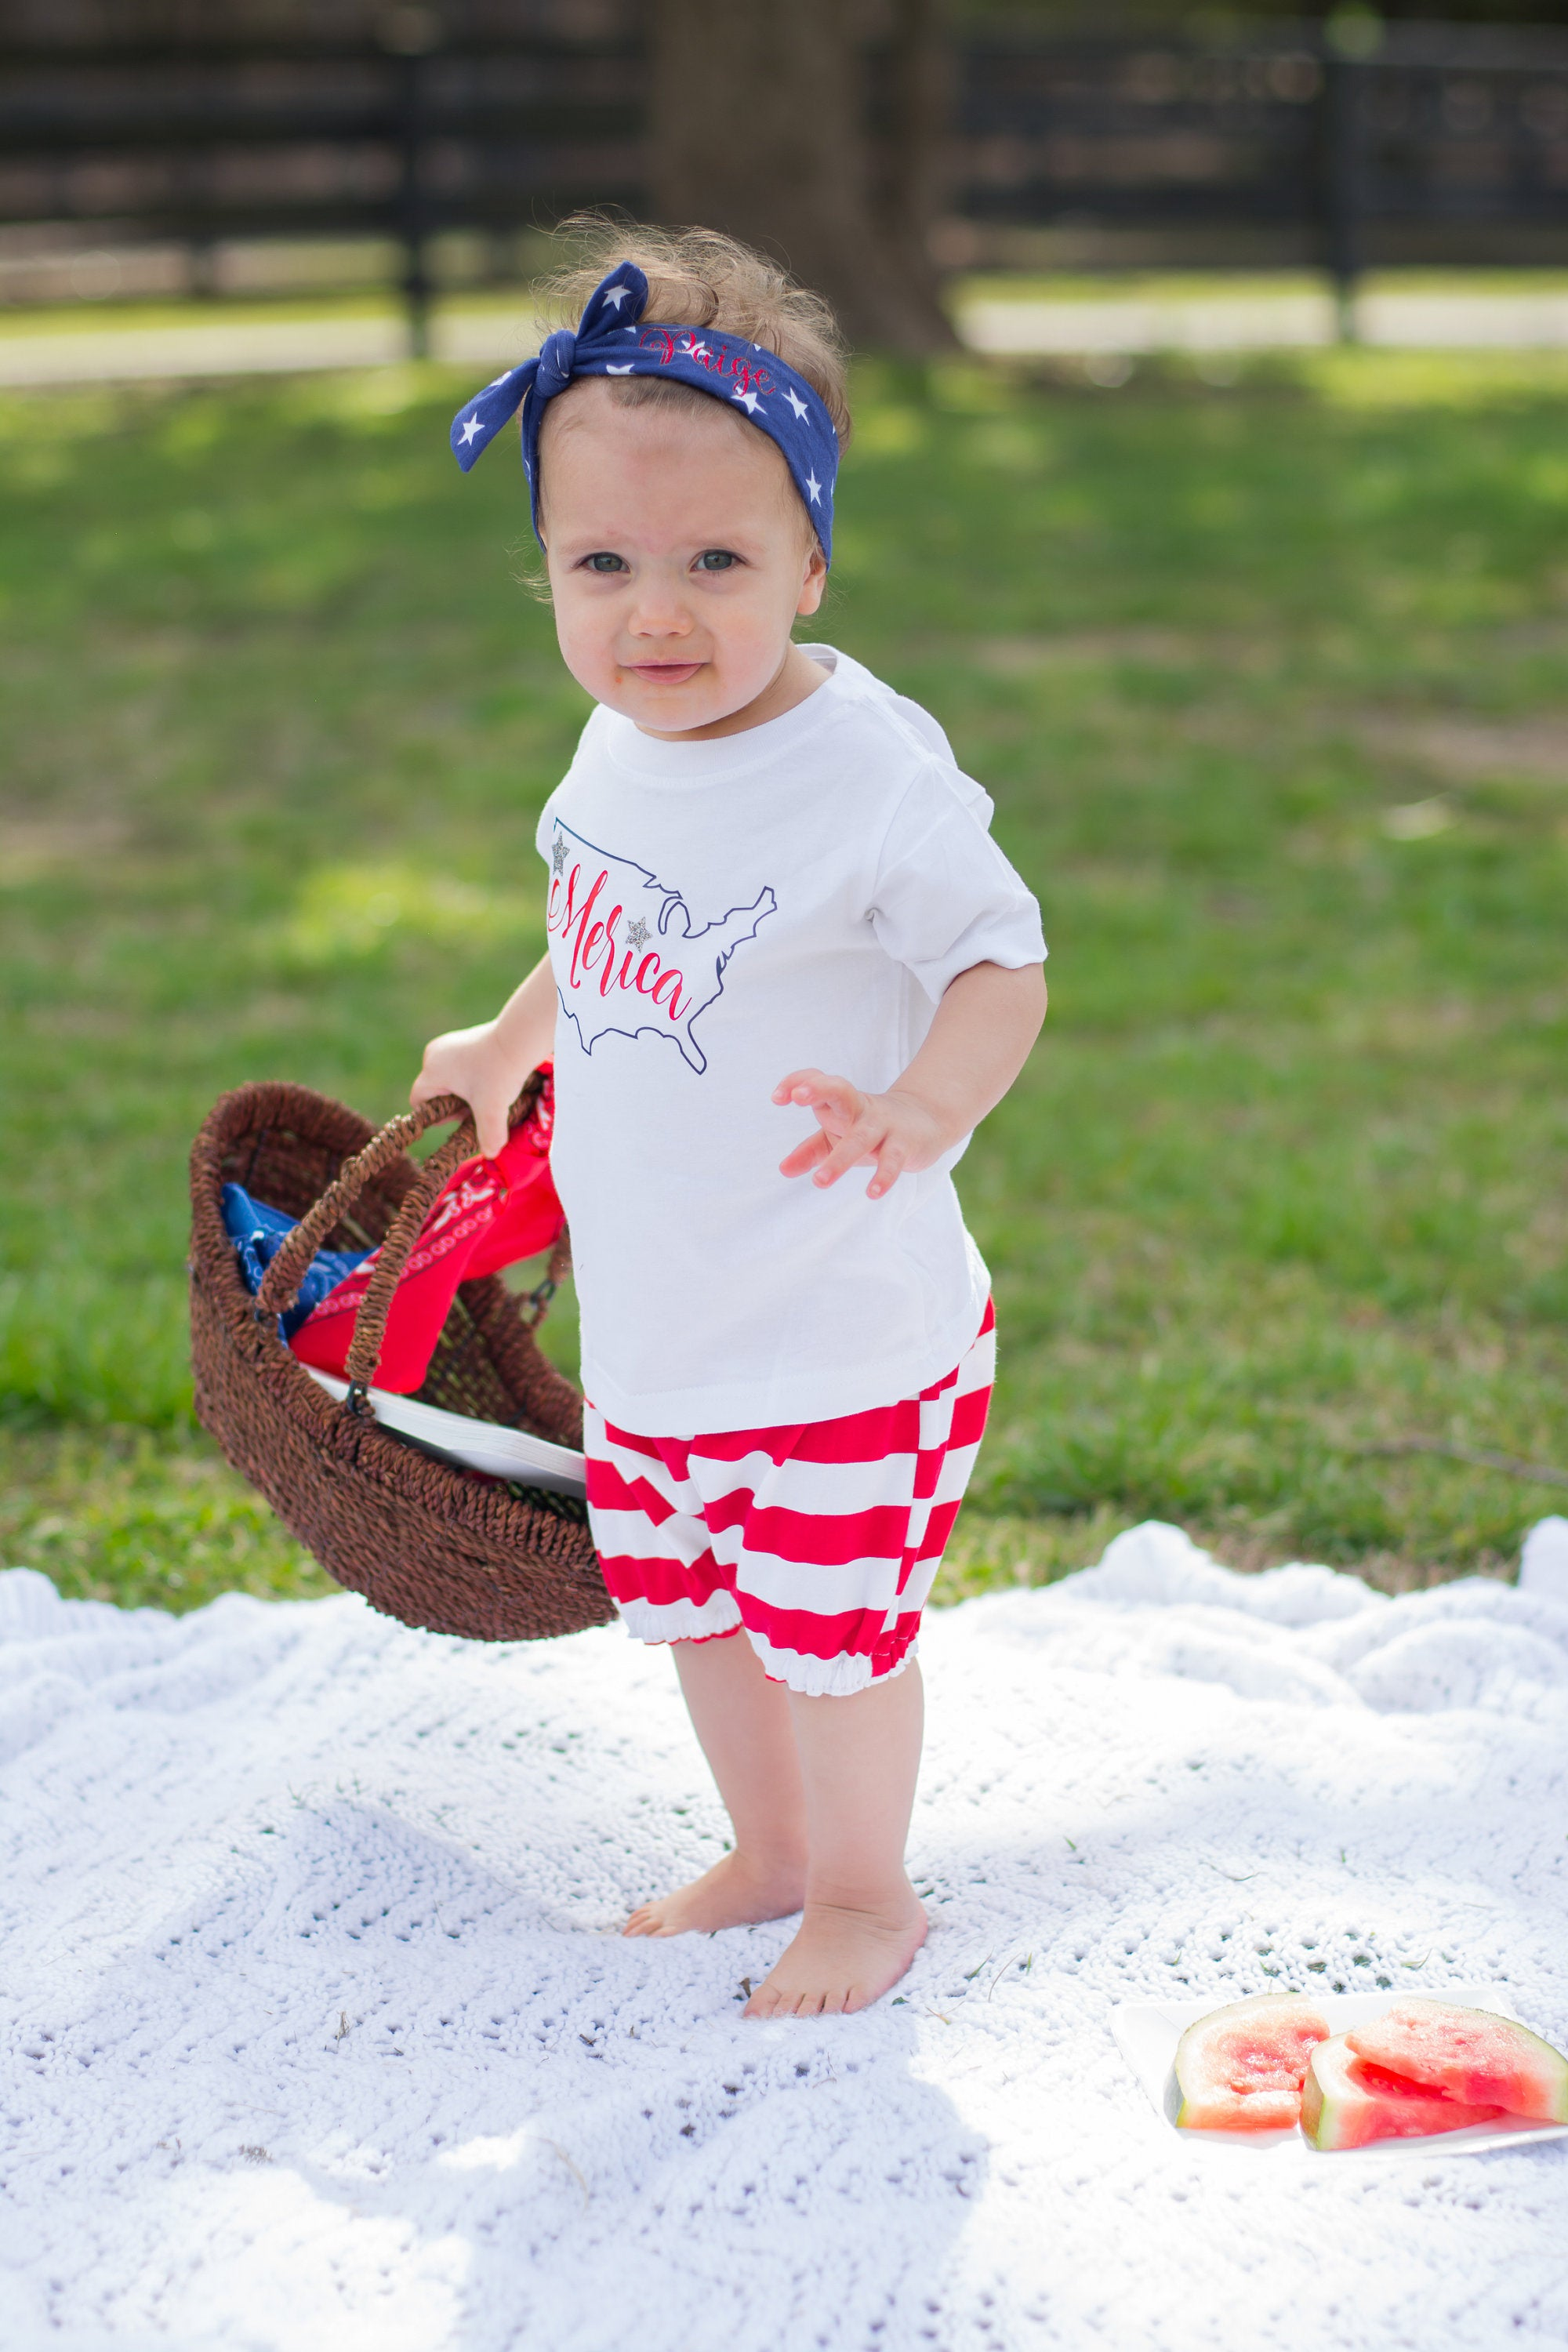 Girl at Memorial Day picnic wearing red white and blue outfit with Merica tshirt